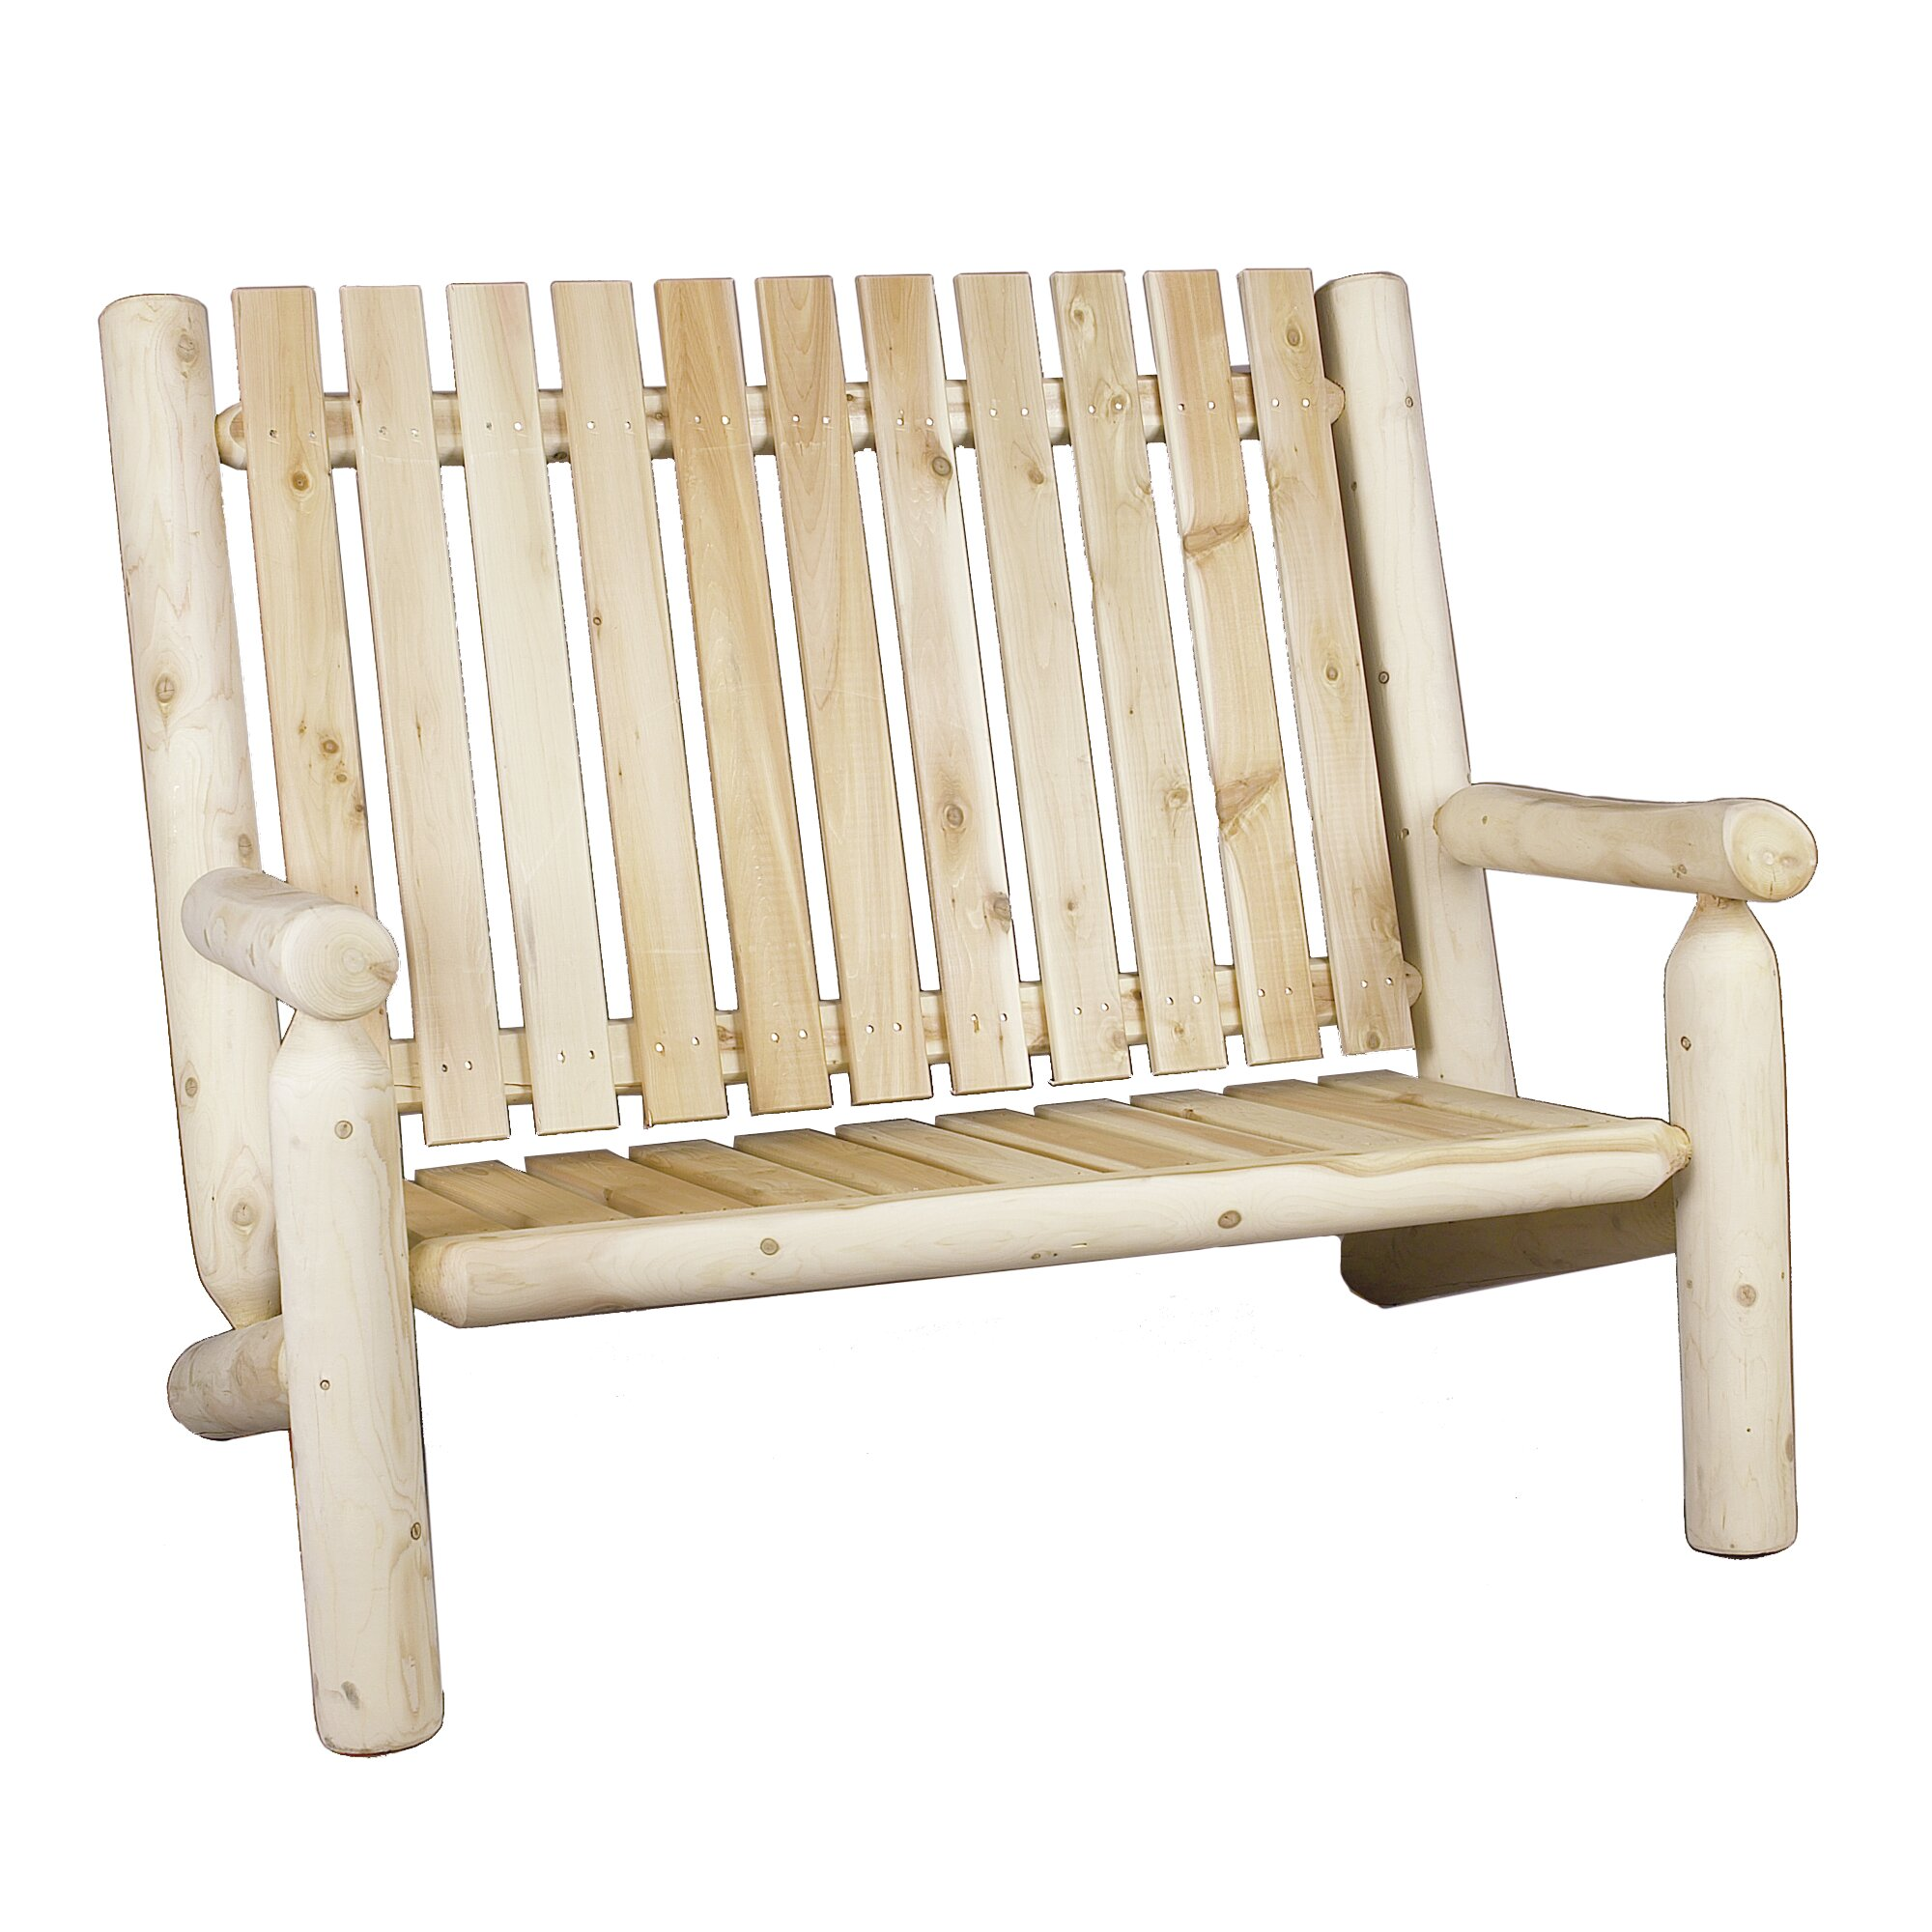 #8B6F40 Rustic Natural Cedar Furniture High Back Cedar Garden Bench with 2000x2000 px of Highly Rated High Back Wooden Bench 20002000 picture/photo @ avoidforclosure.info